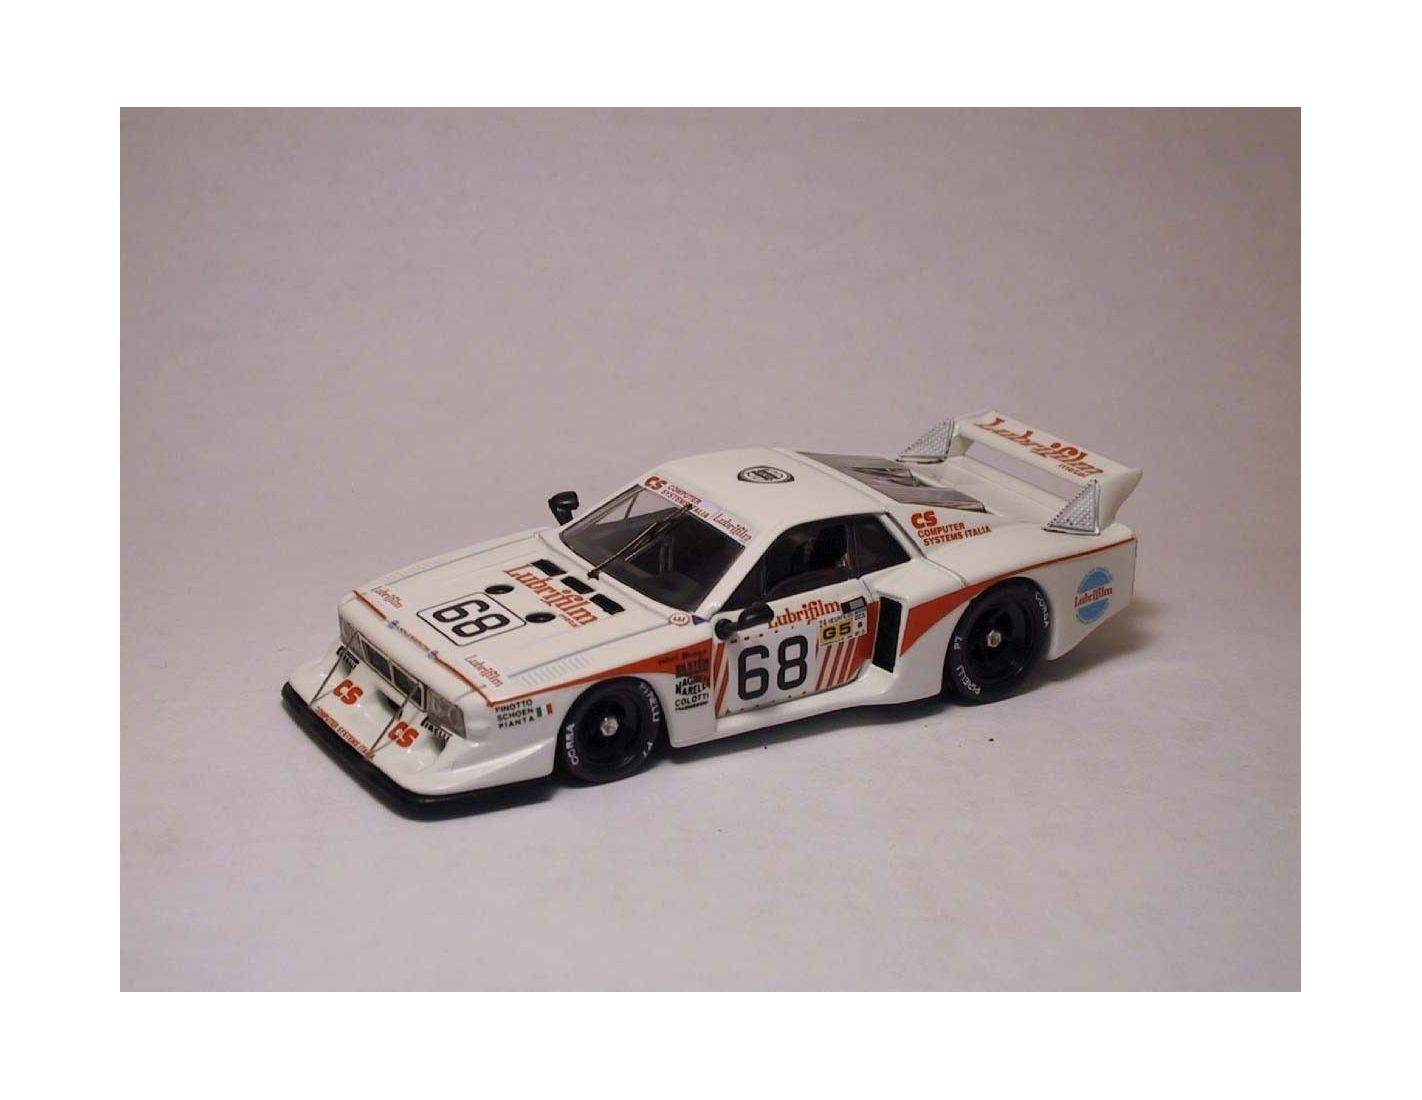 Best Model BT9217 LANCIA BETA MONTECARLO N.68 14th LM 1981 FINOTTO-SCHON-PIANTA 1:43 Modellino